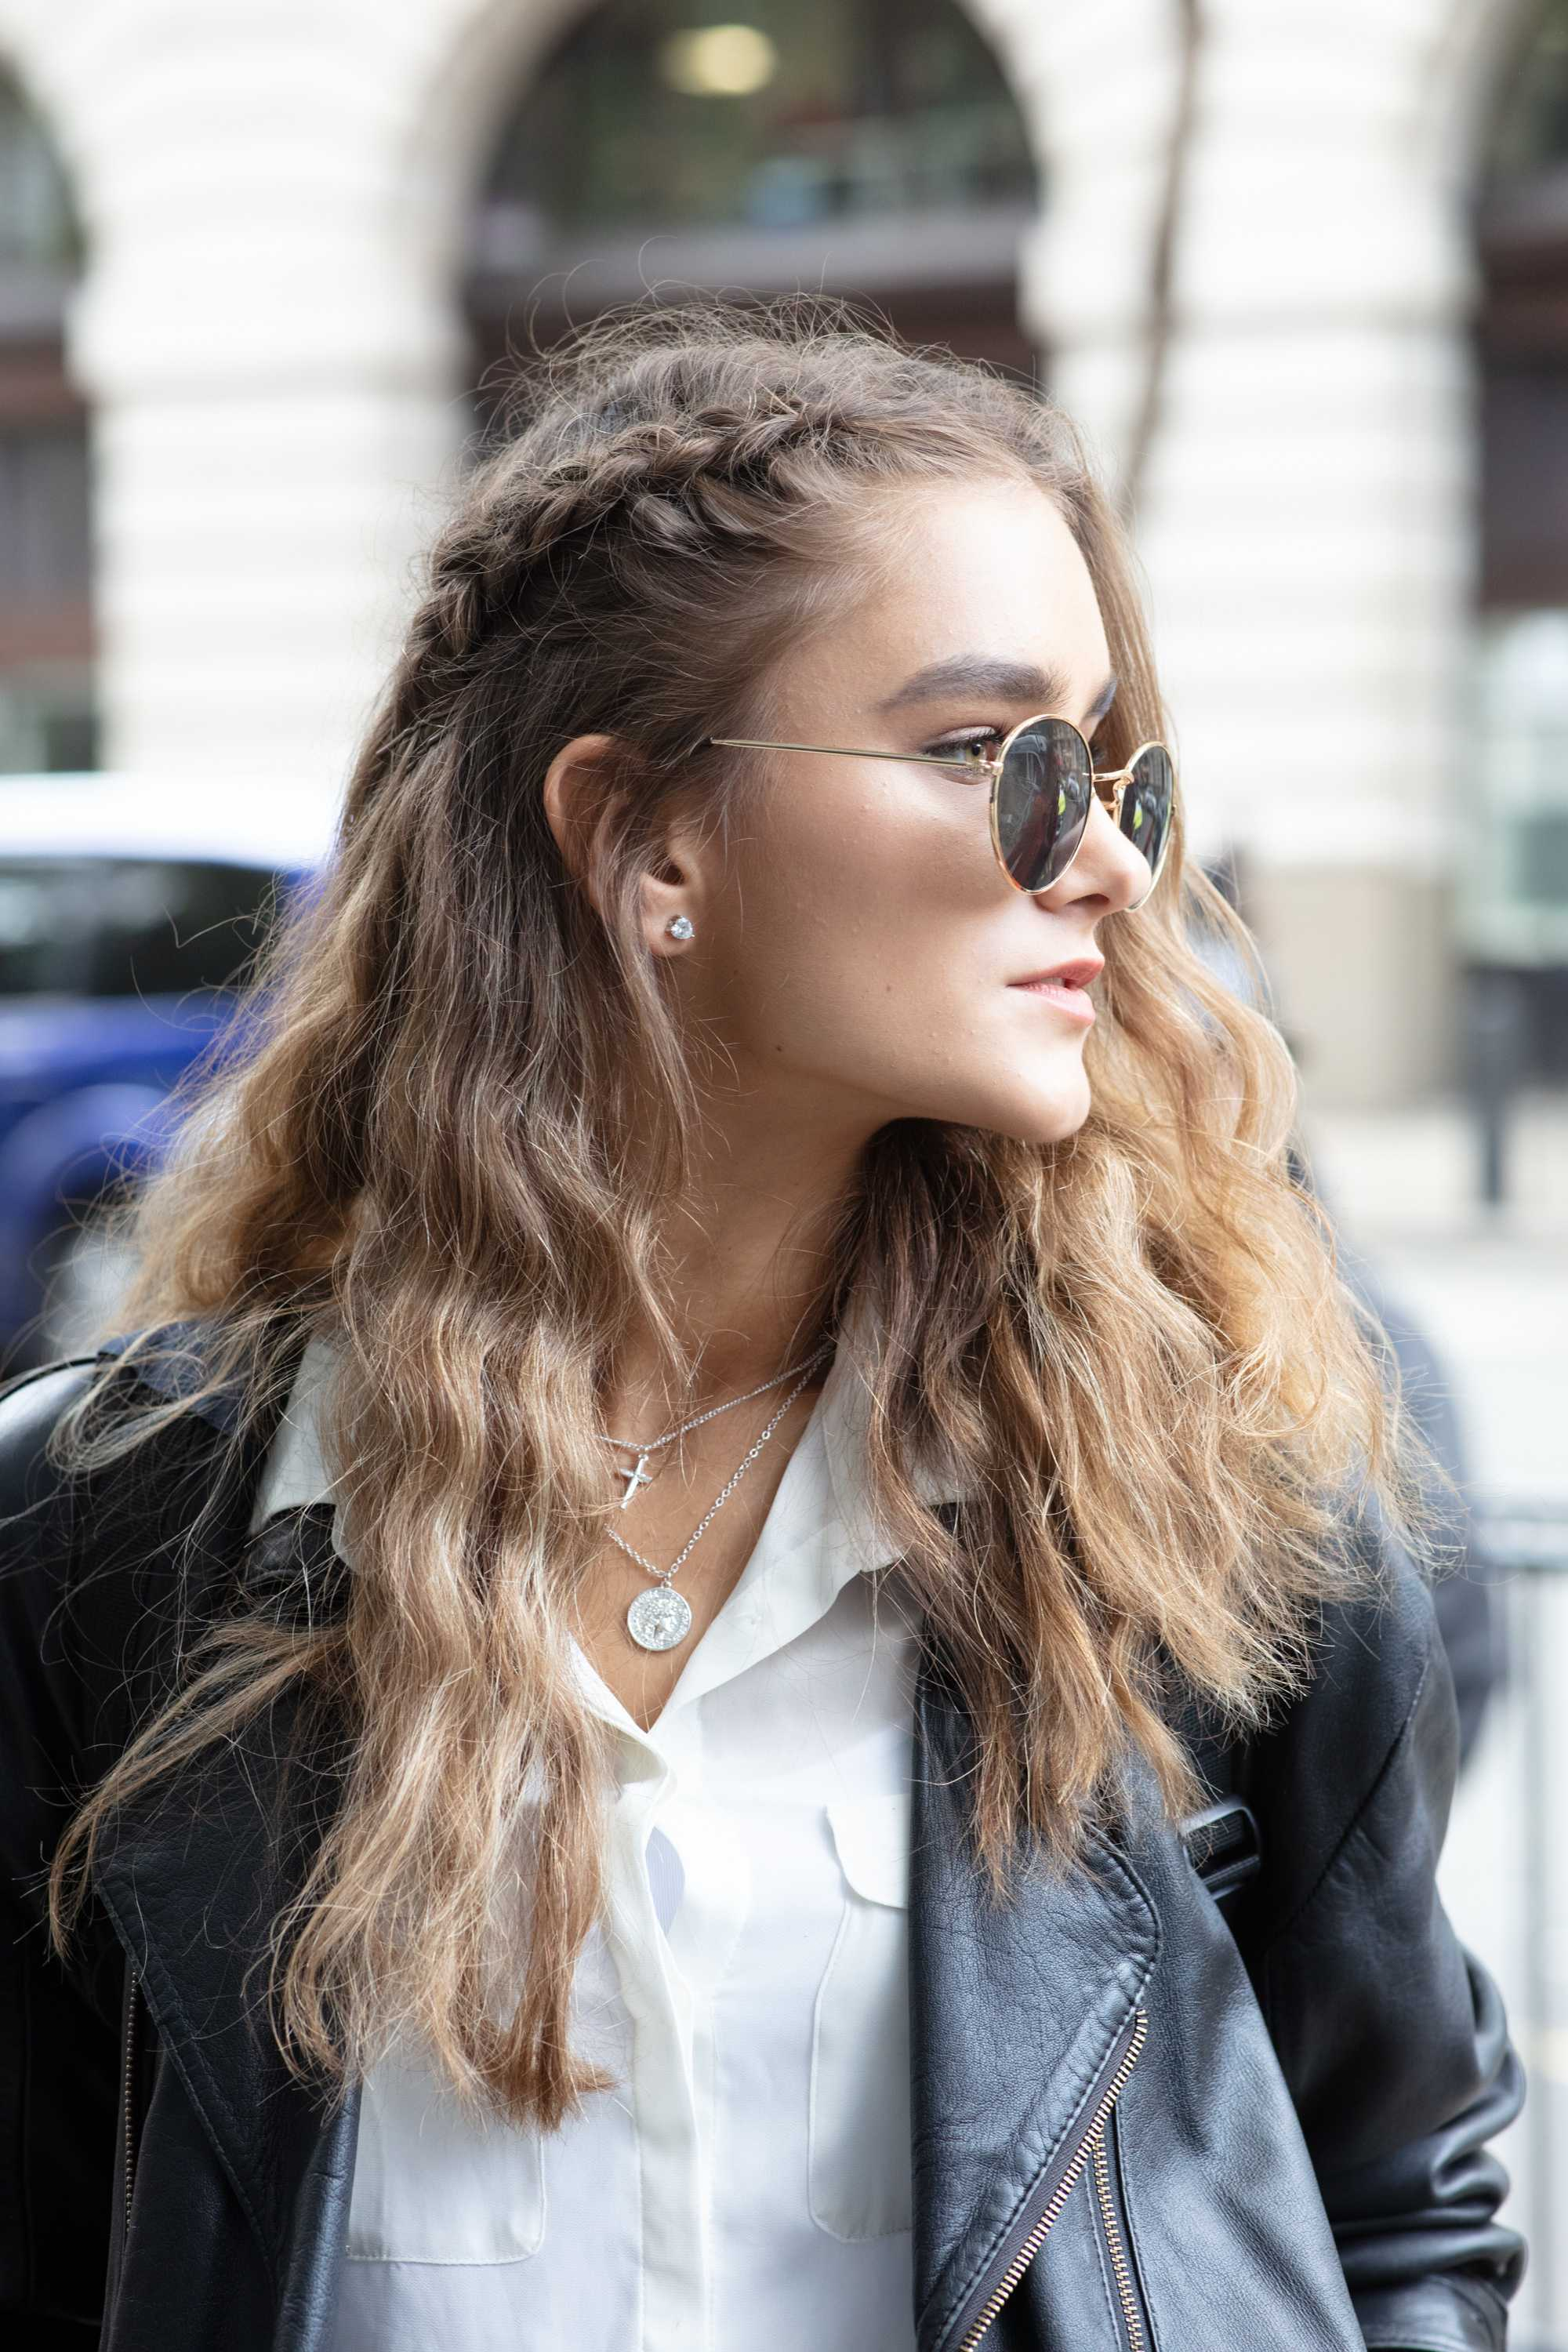 Thick hairstyles: Woman with long dark brown thick hair styled into waves with a side braid